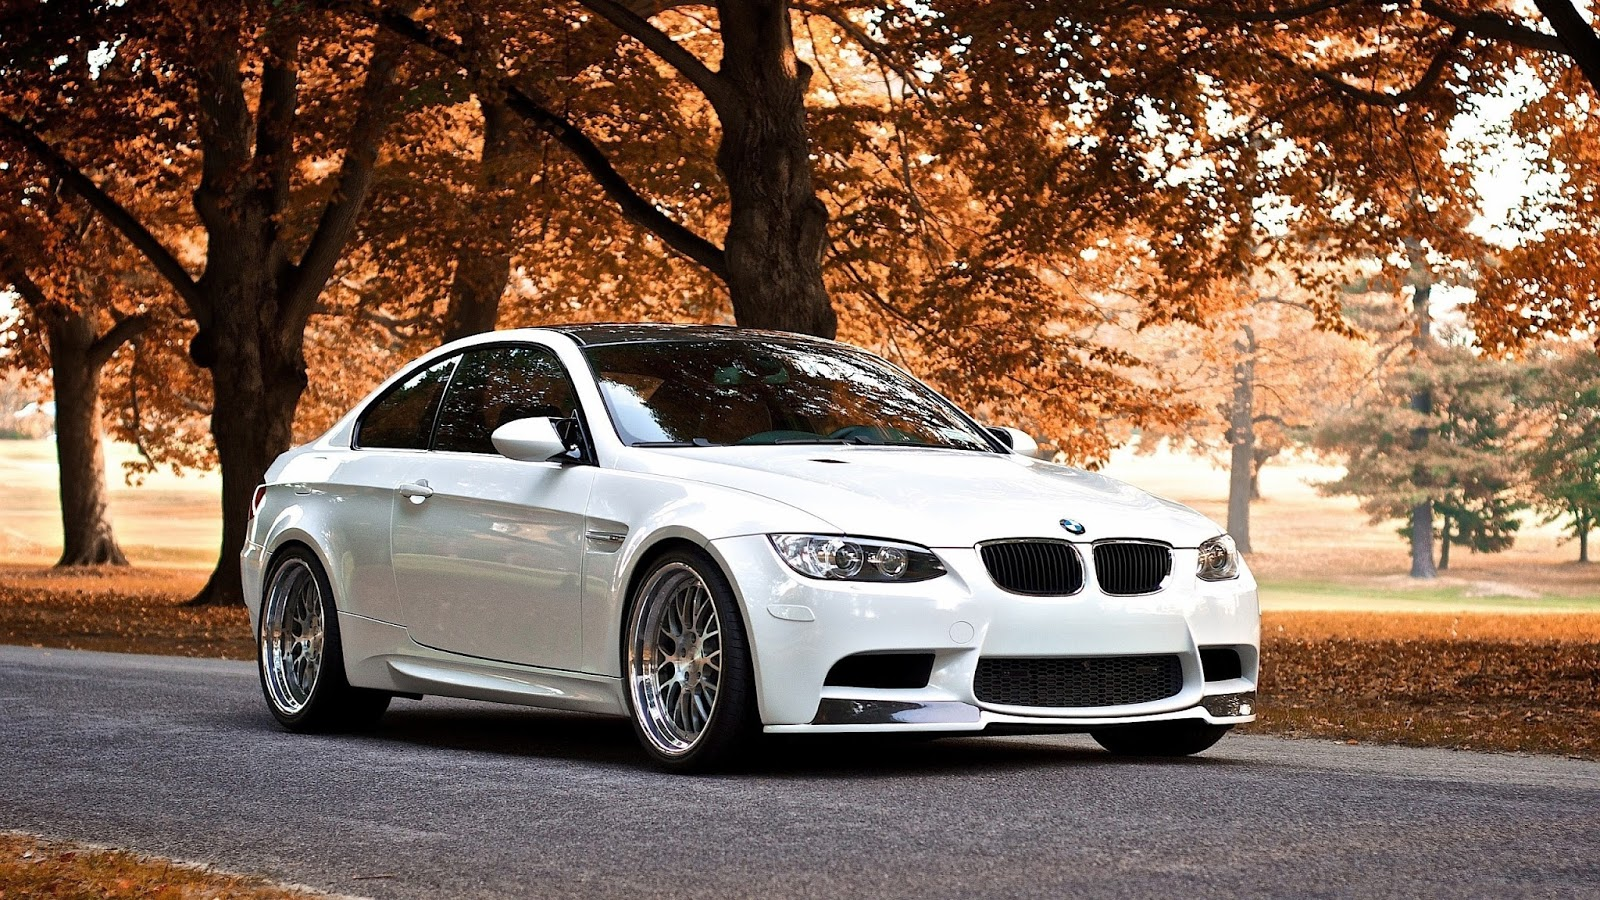 bmw cars wallpapers2